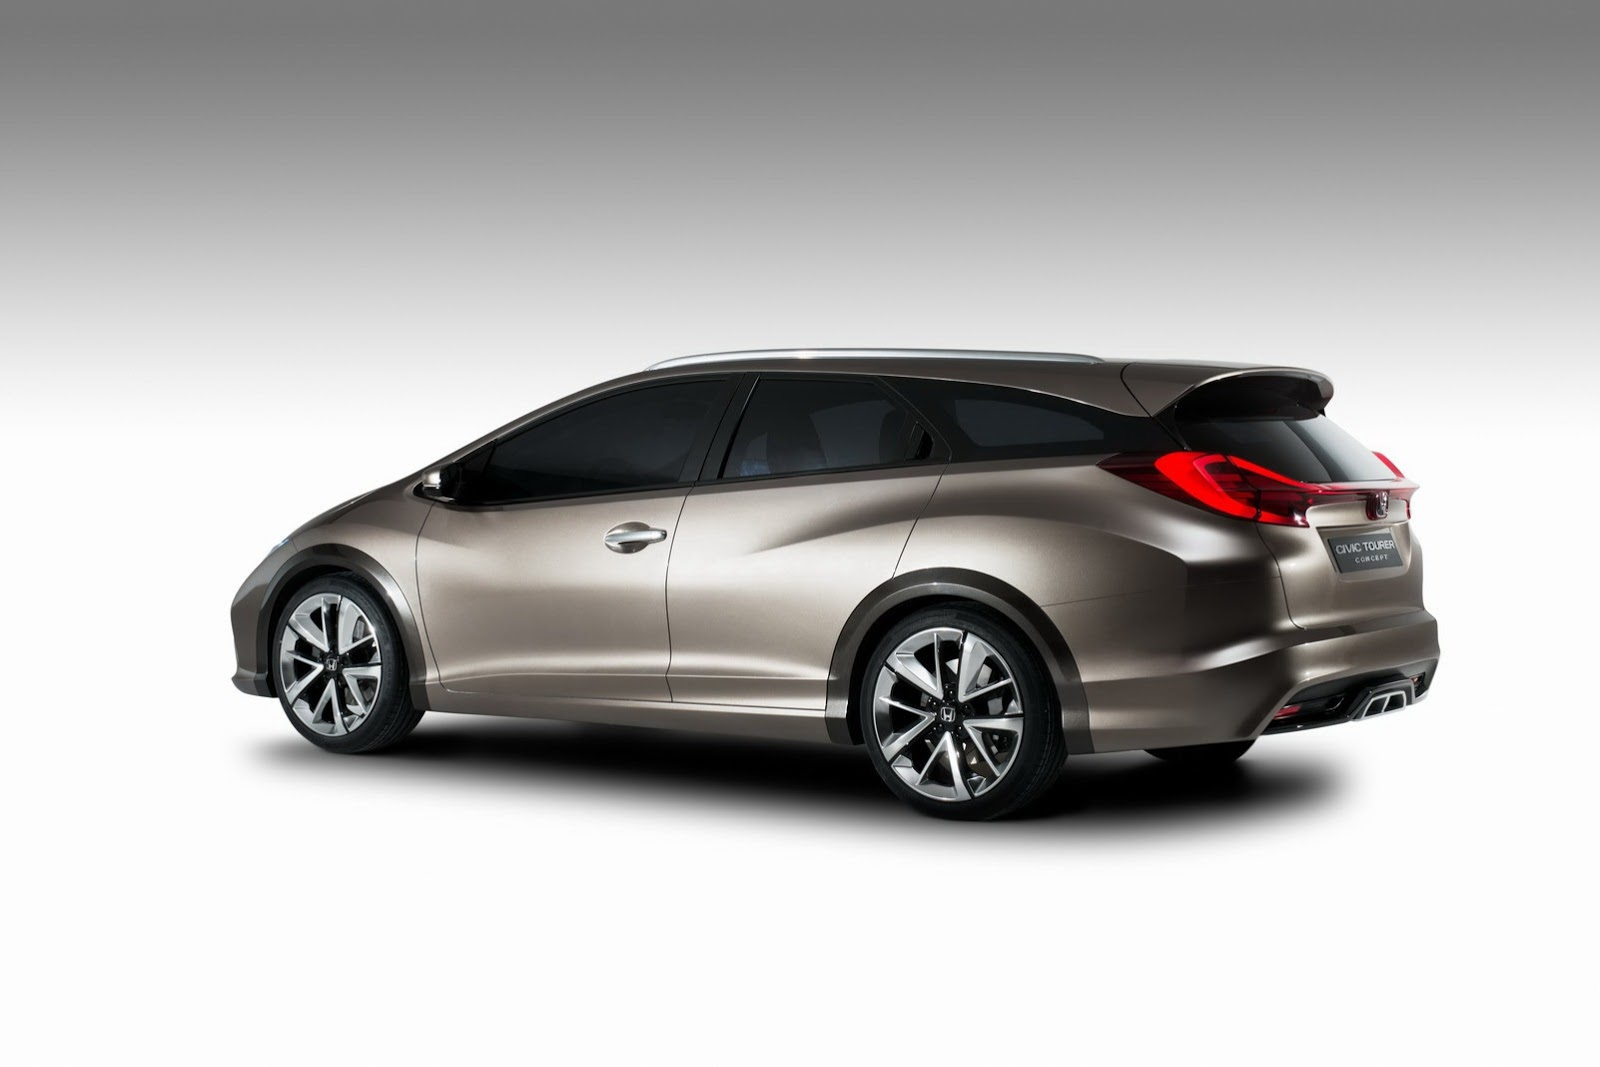 honda civic wagon concept looks beautiful in geneva live photos autoevolution. Black Bedroom Furniture Sets. Home Design Ideas